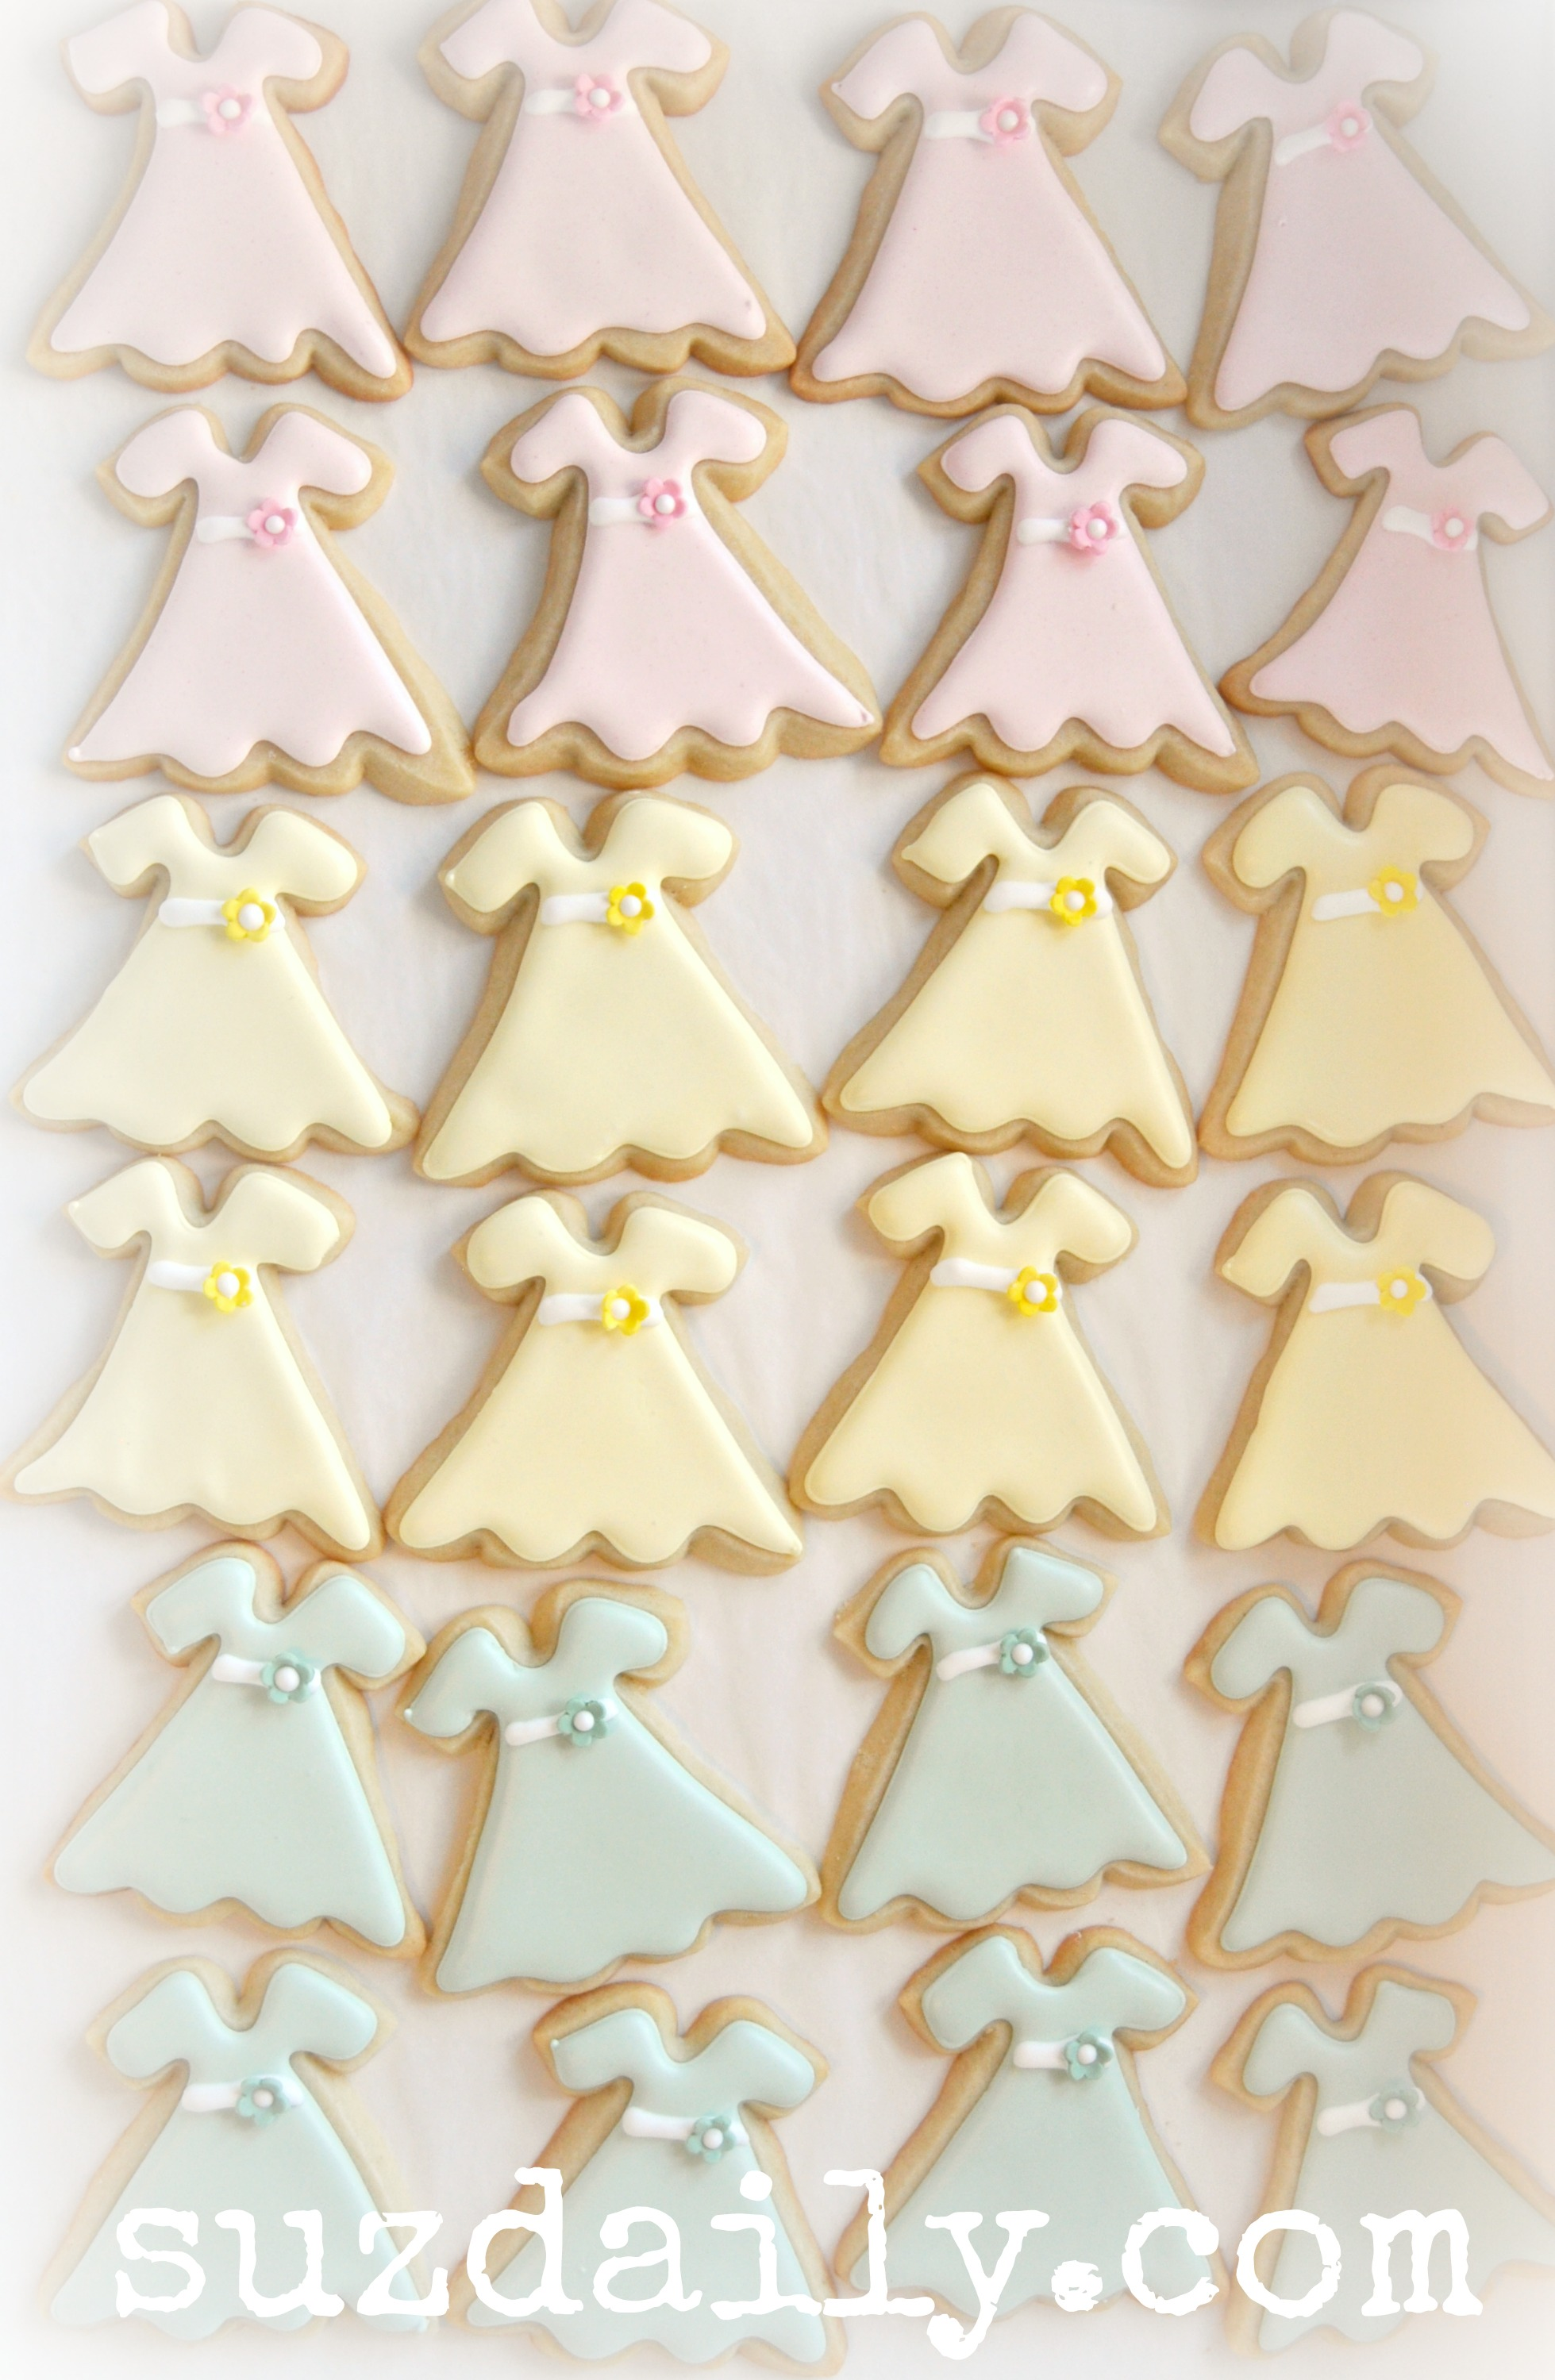 One Hundred Dresses Cookies